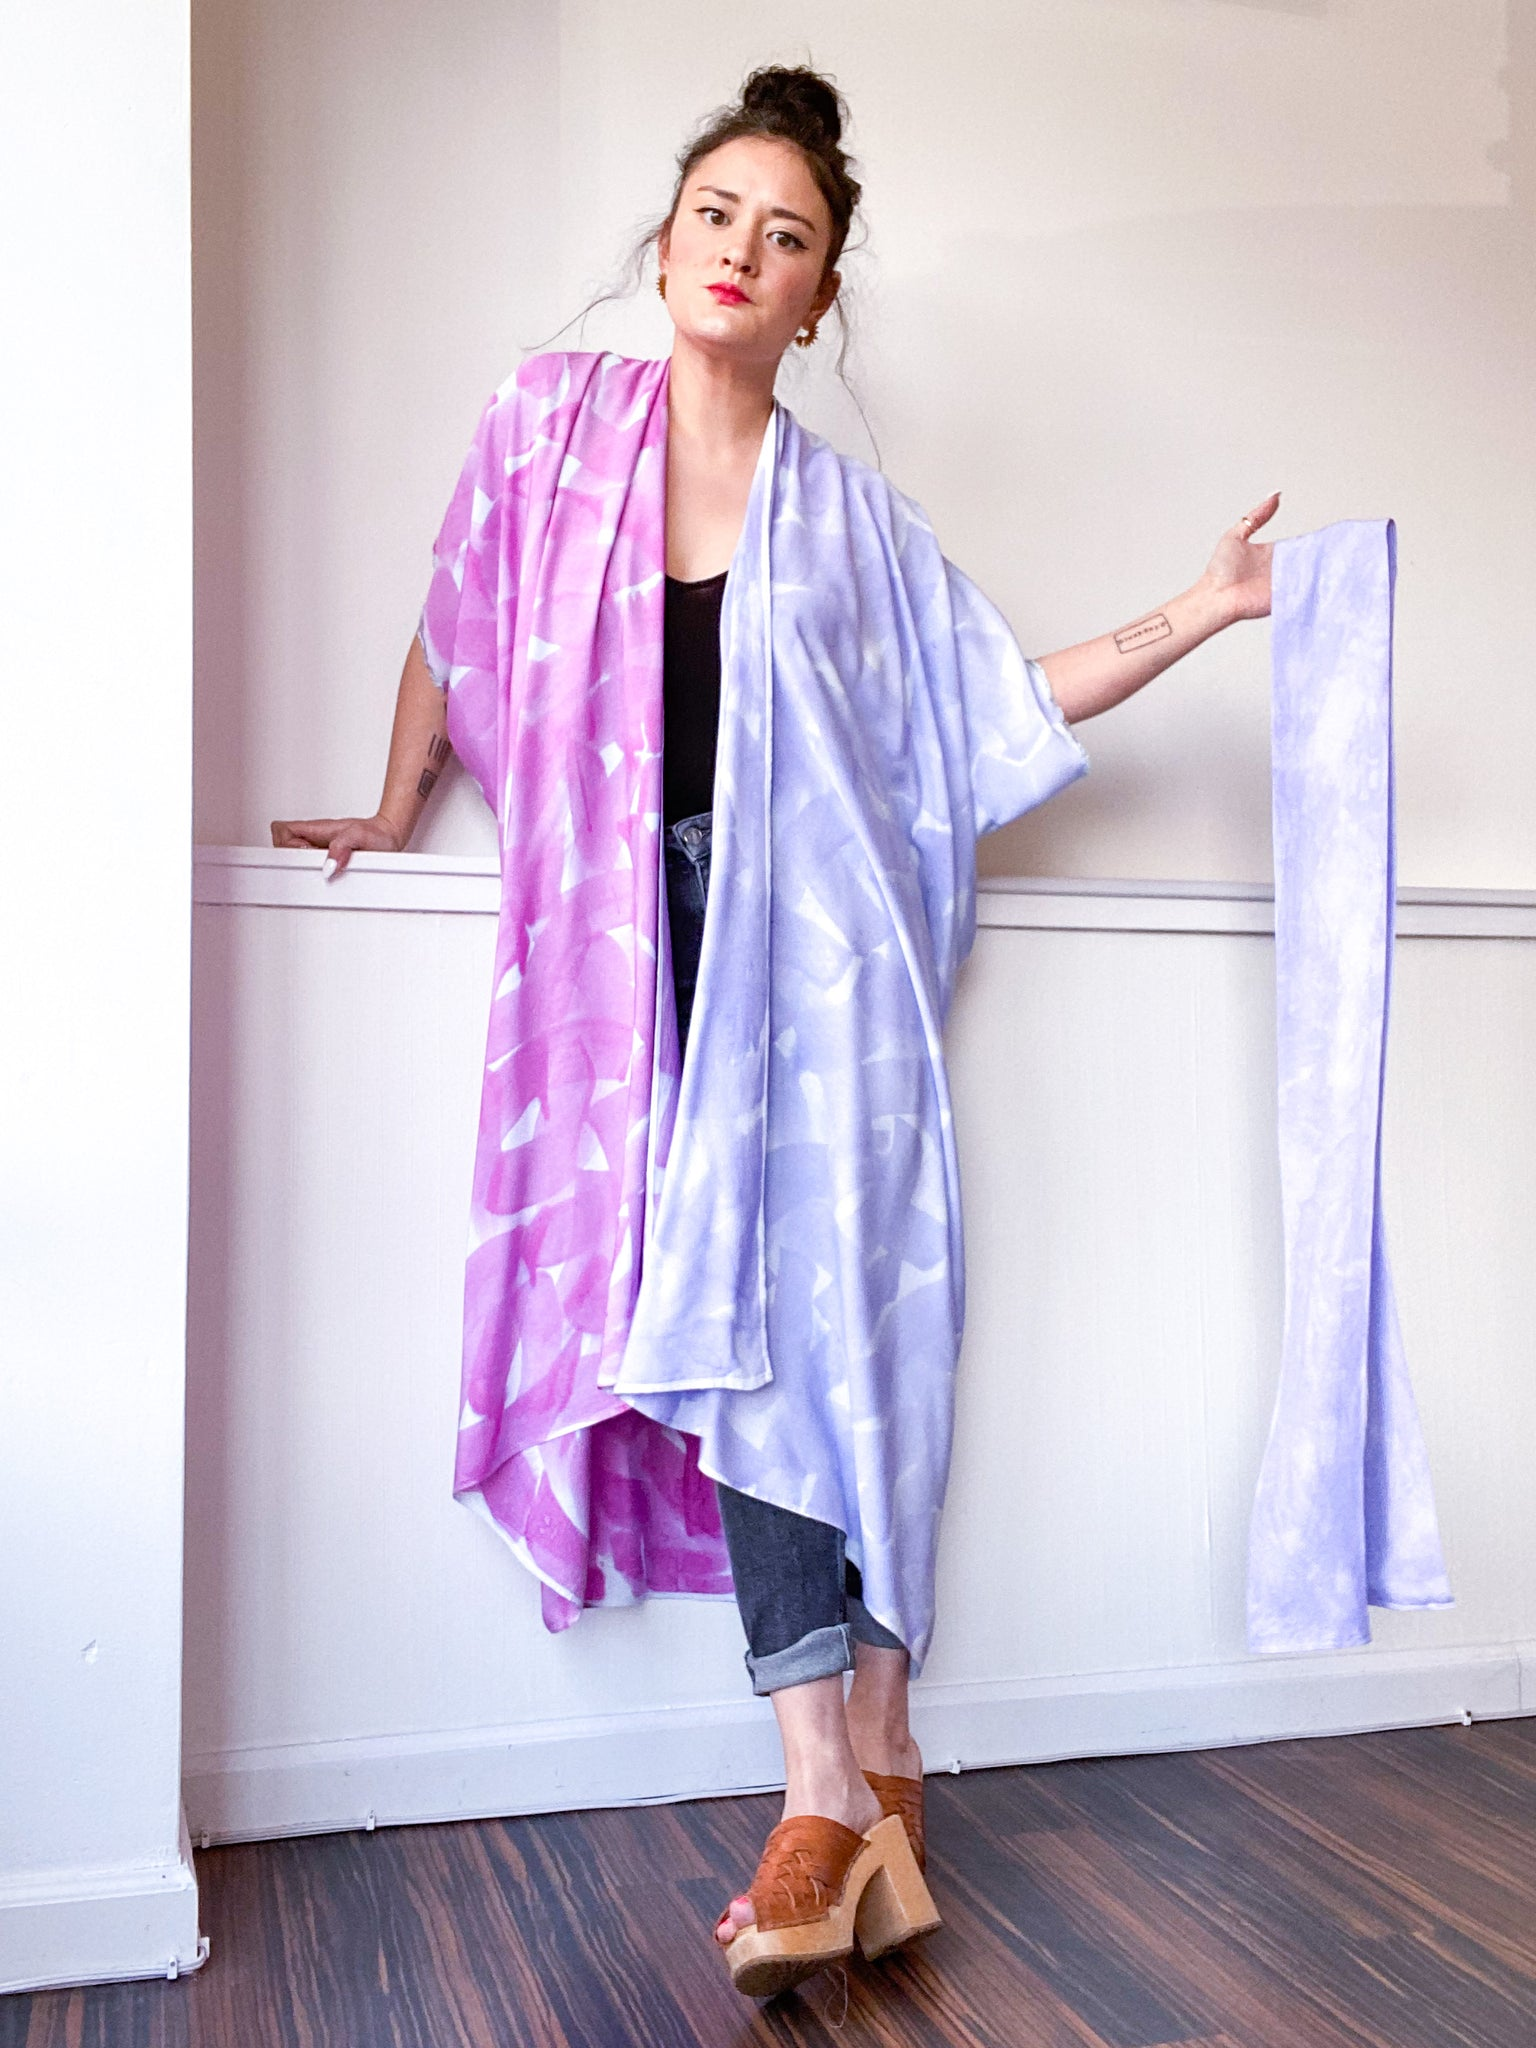 Limited Edition Hand-Dyed High Low Kimono Wisteria Lilac